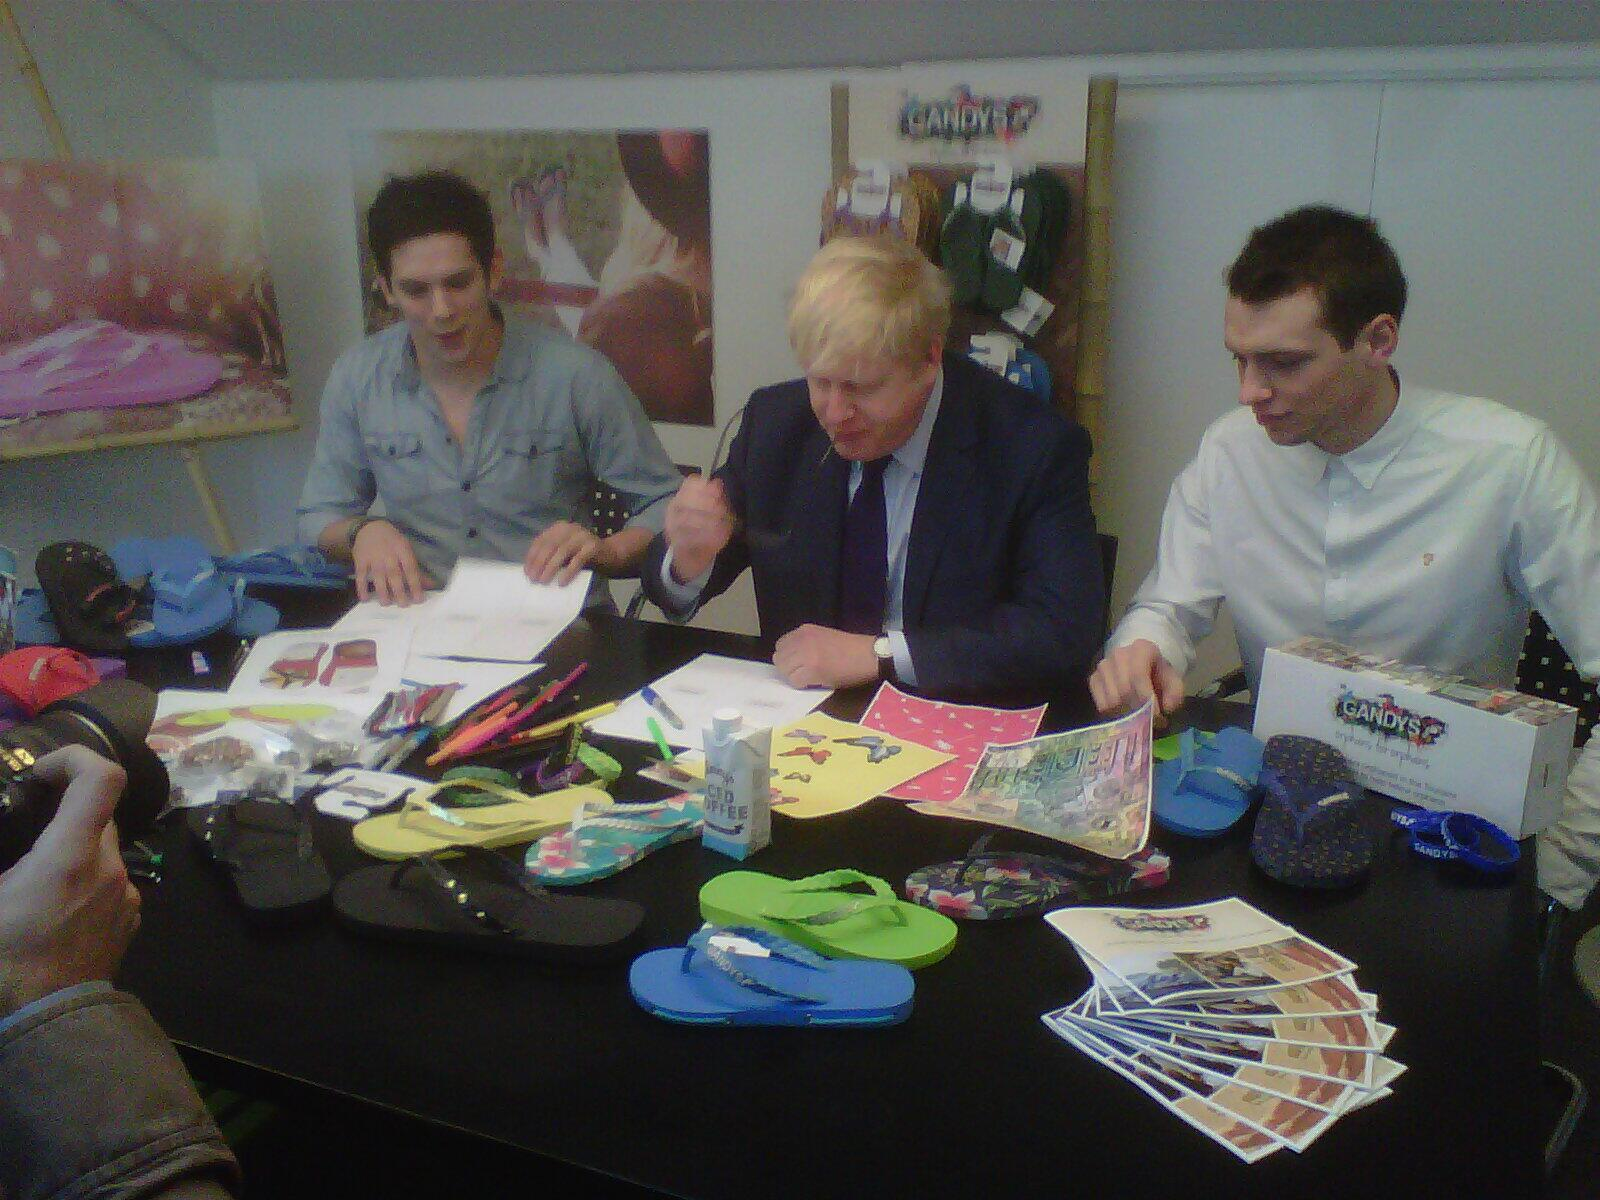 Went to Southfields to visit @Gandysflipflops new office, great eg of entrepreneurship & a fast-growing Ldn business http://t.co/TYI3ycMfsR